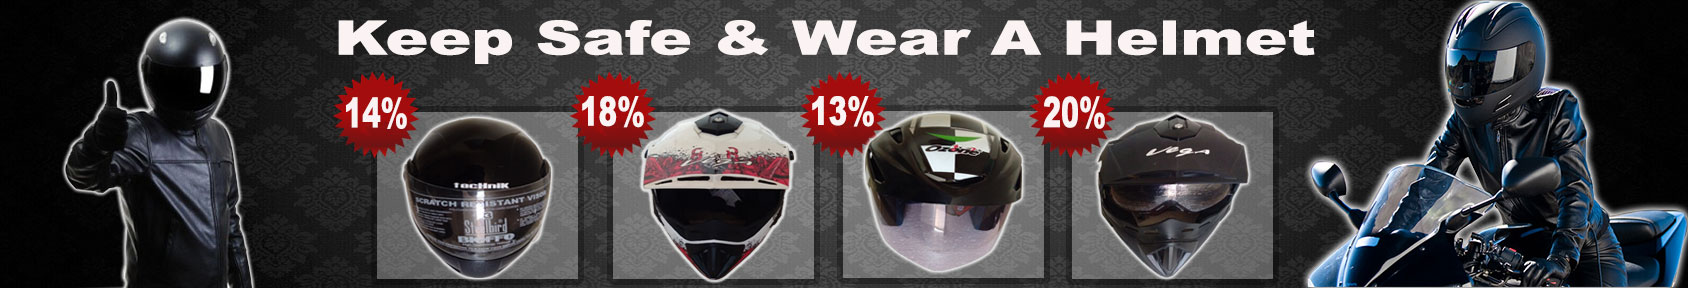 Special offers on Genuine Motorcycle Spare Parts And Accessories - Buy Helmets at lower rates